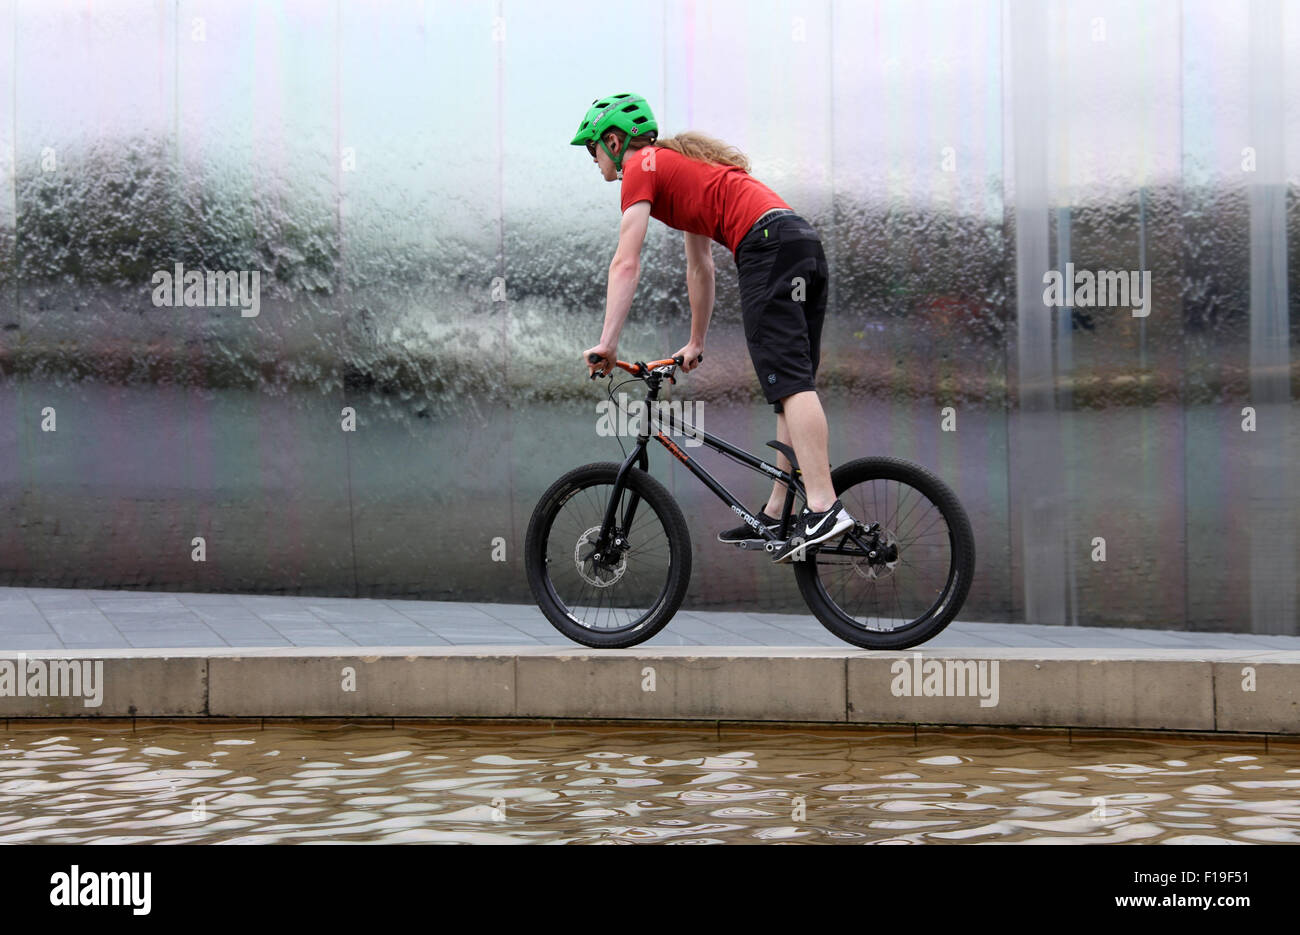 Stunt cyclist at the Cutting Edge steel sculpture and  water feature at Sheffield Railway Station - Stock Image